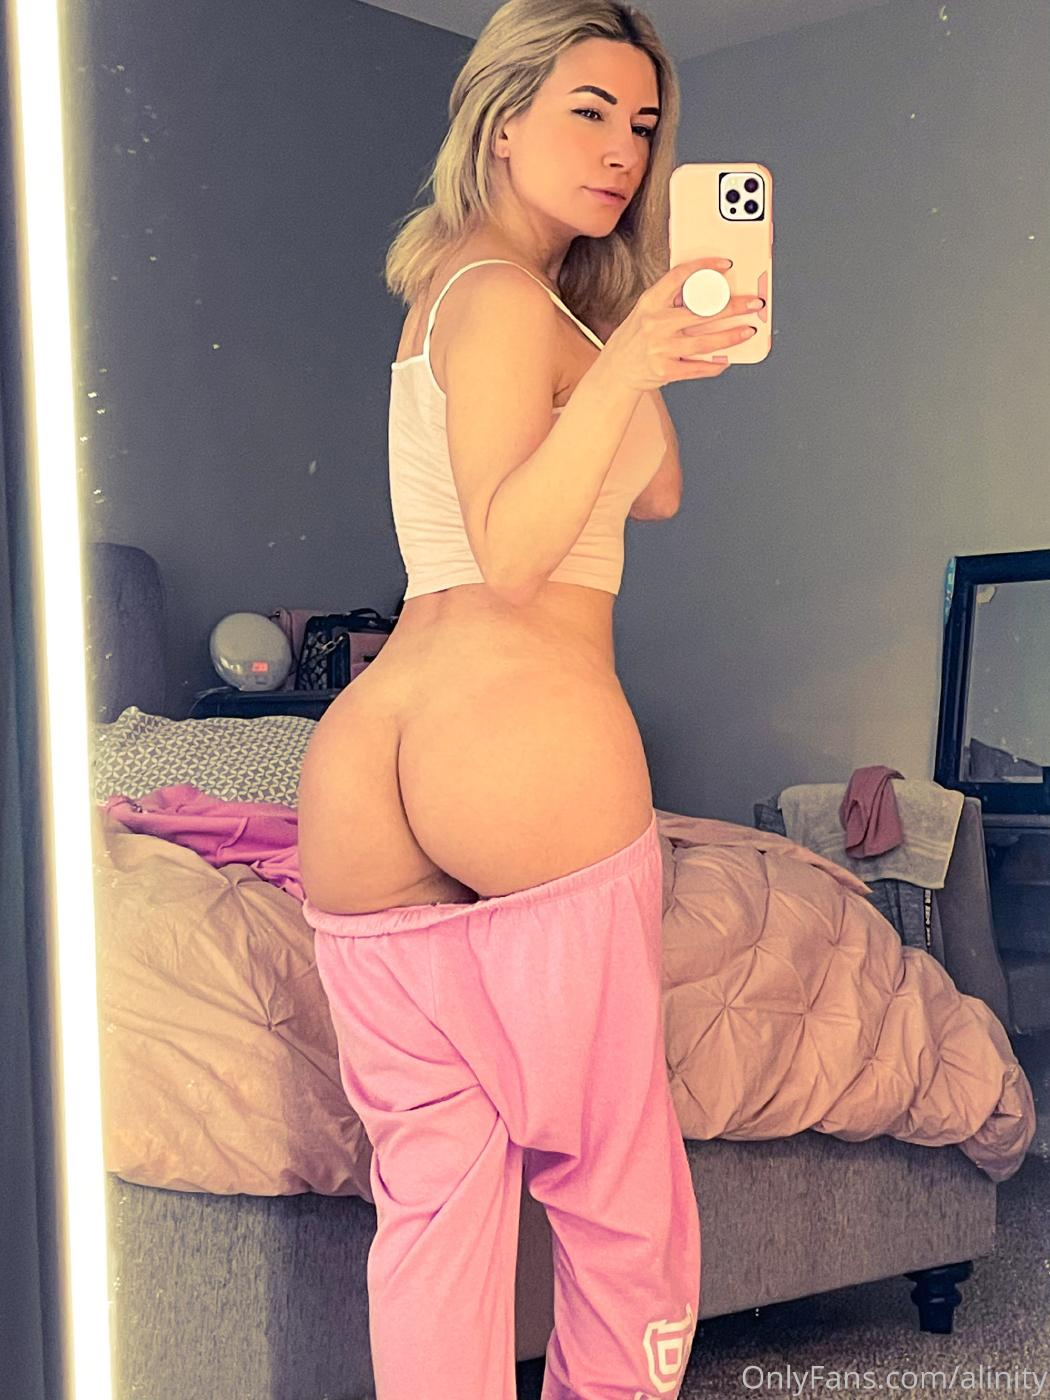 Alinity Nude Pussy Tease Onlyfans Set Leaked 0009